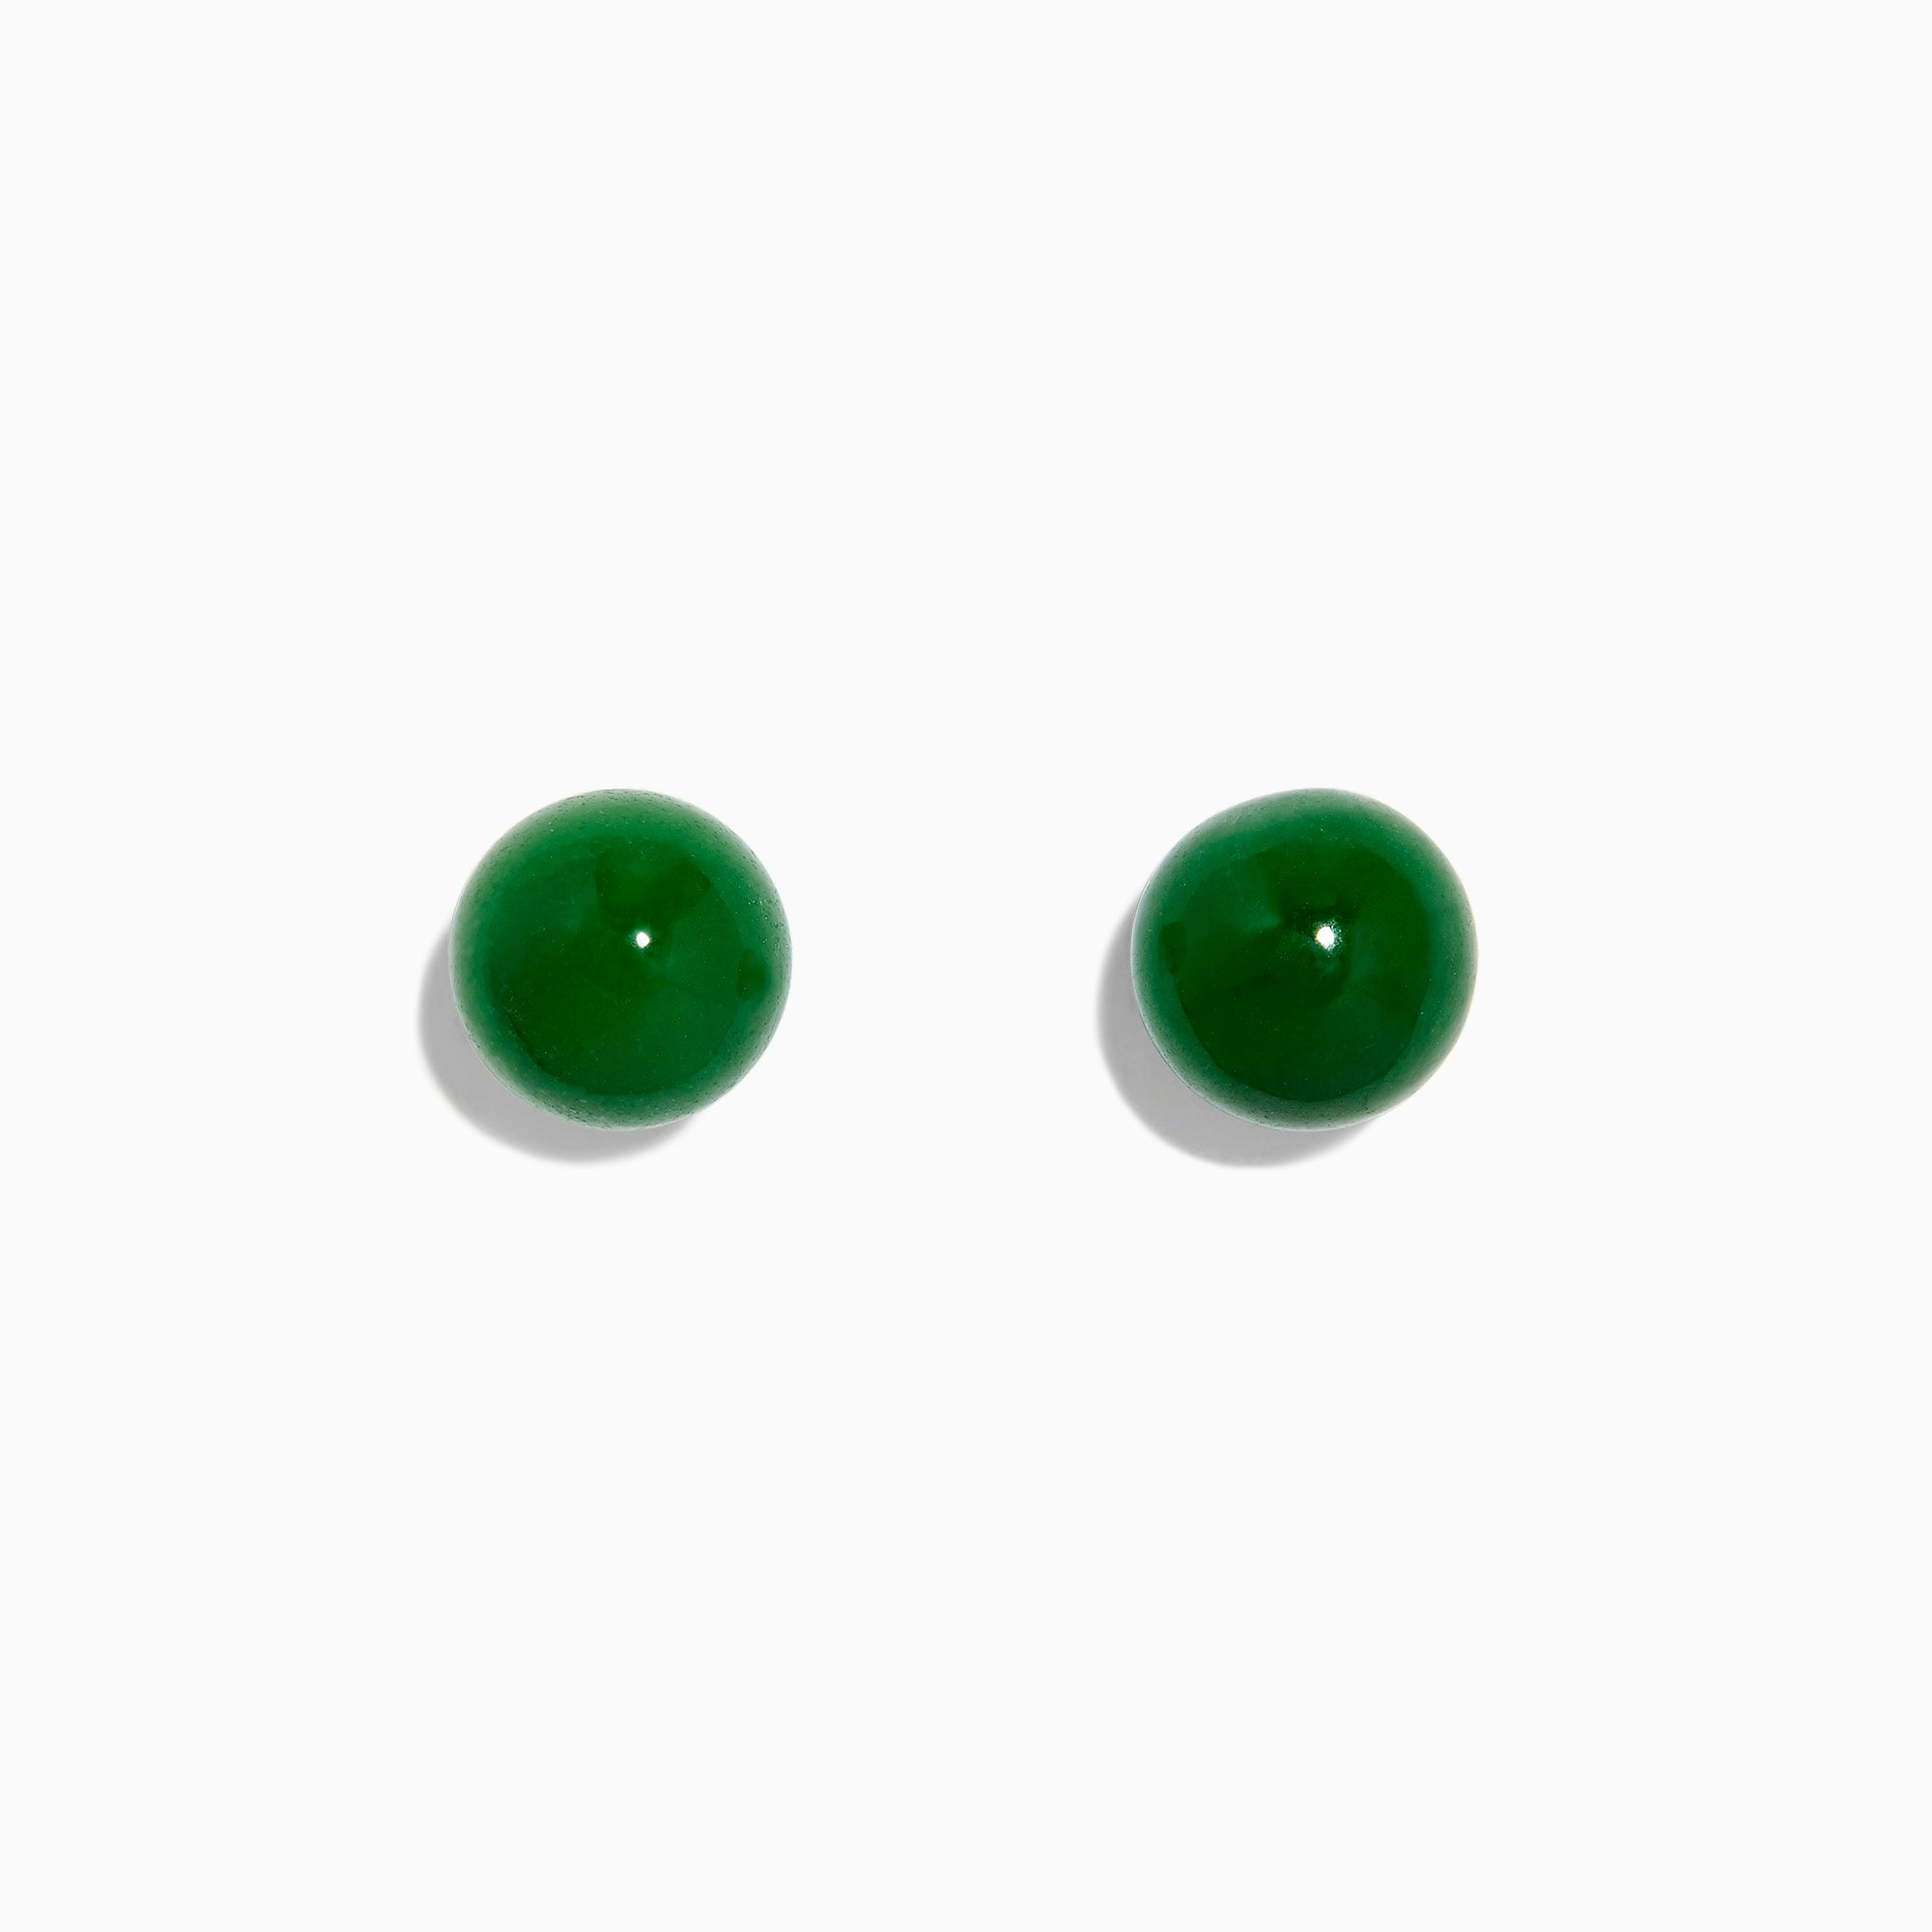 Effy 14K Yellow Gold Jade Stud Earrings, 18.70 TW